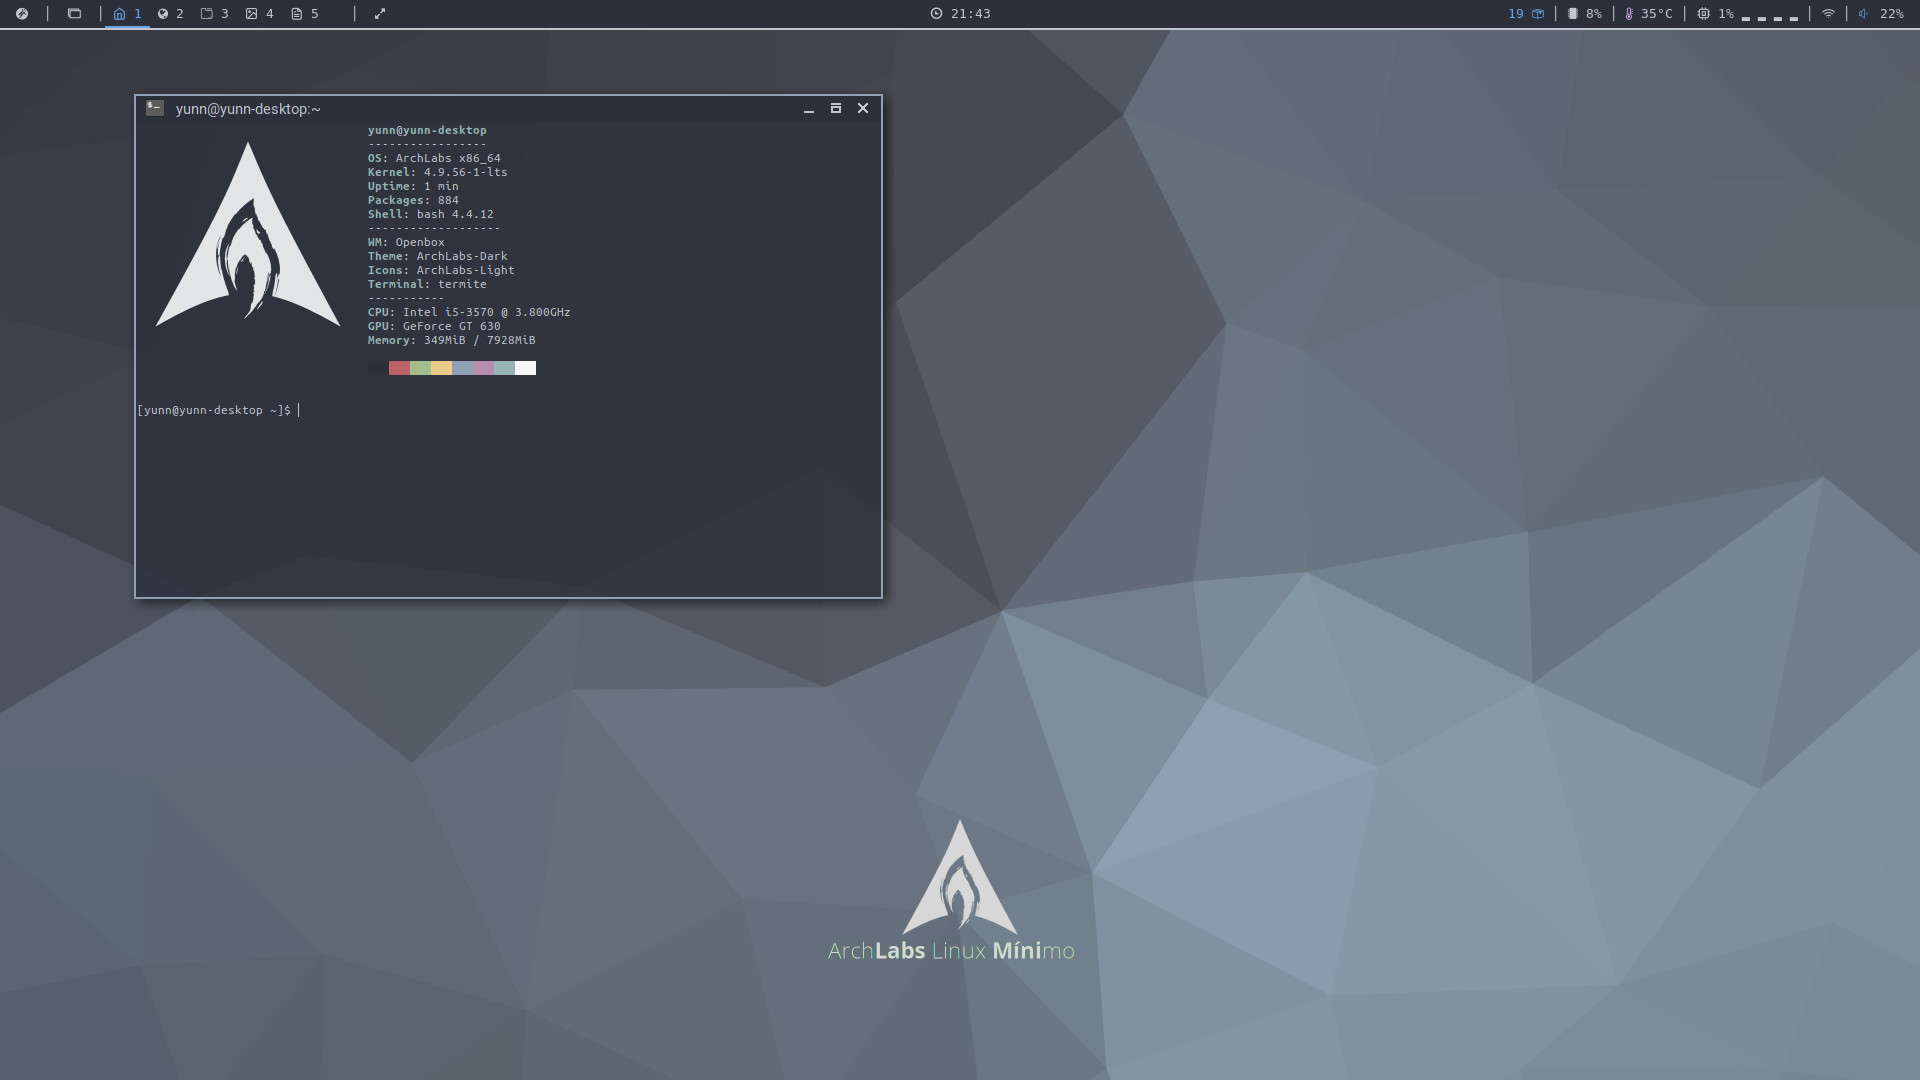 Released ArchLabs 2017.10 Minimo